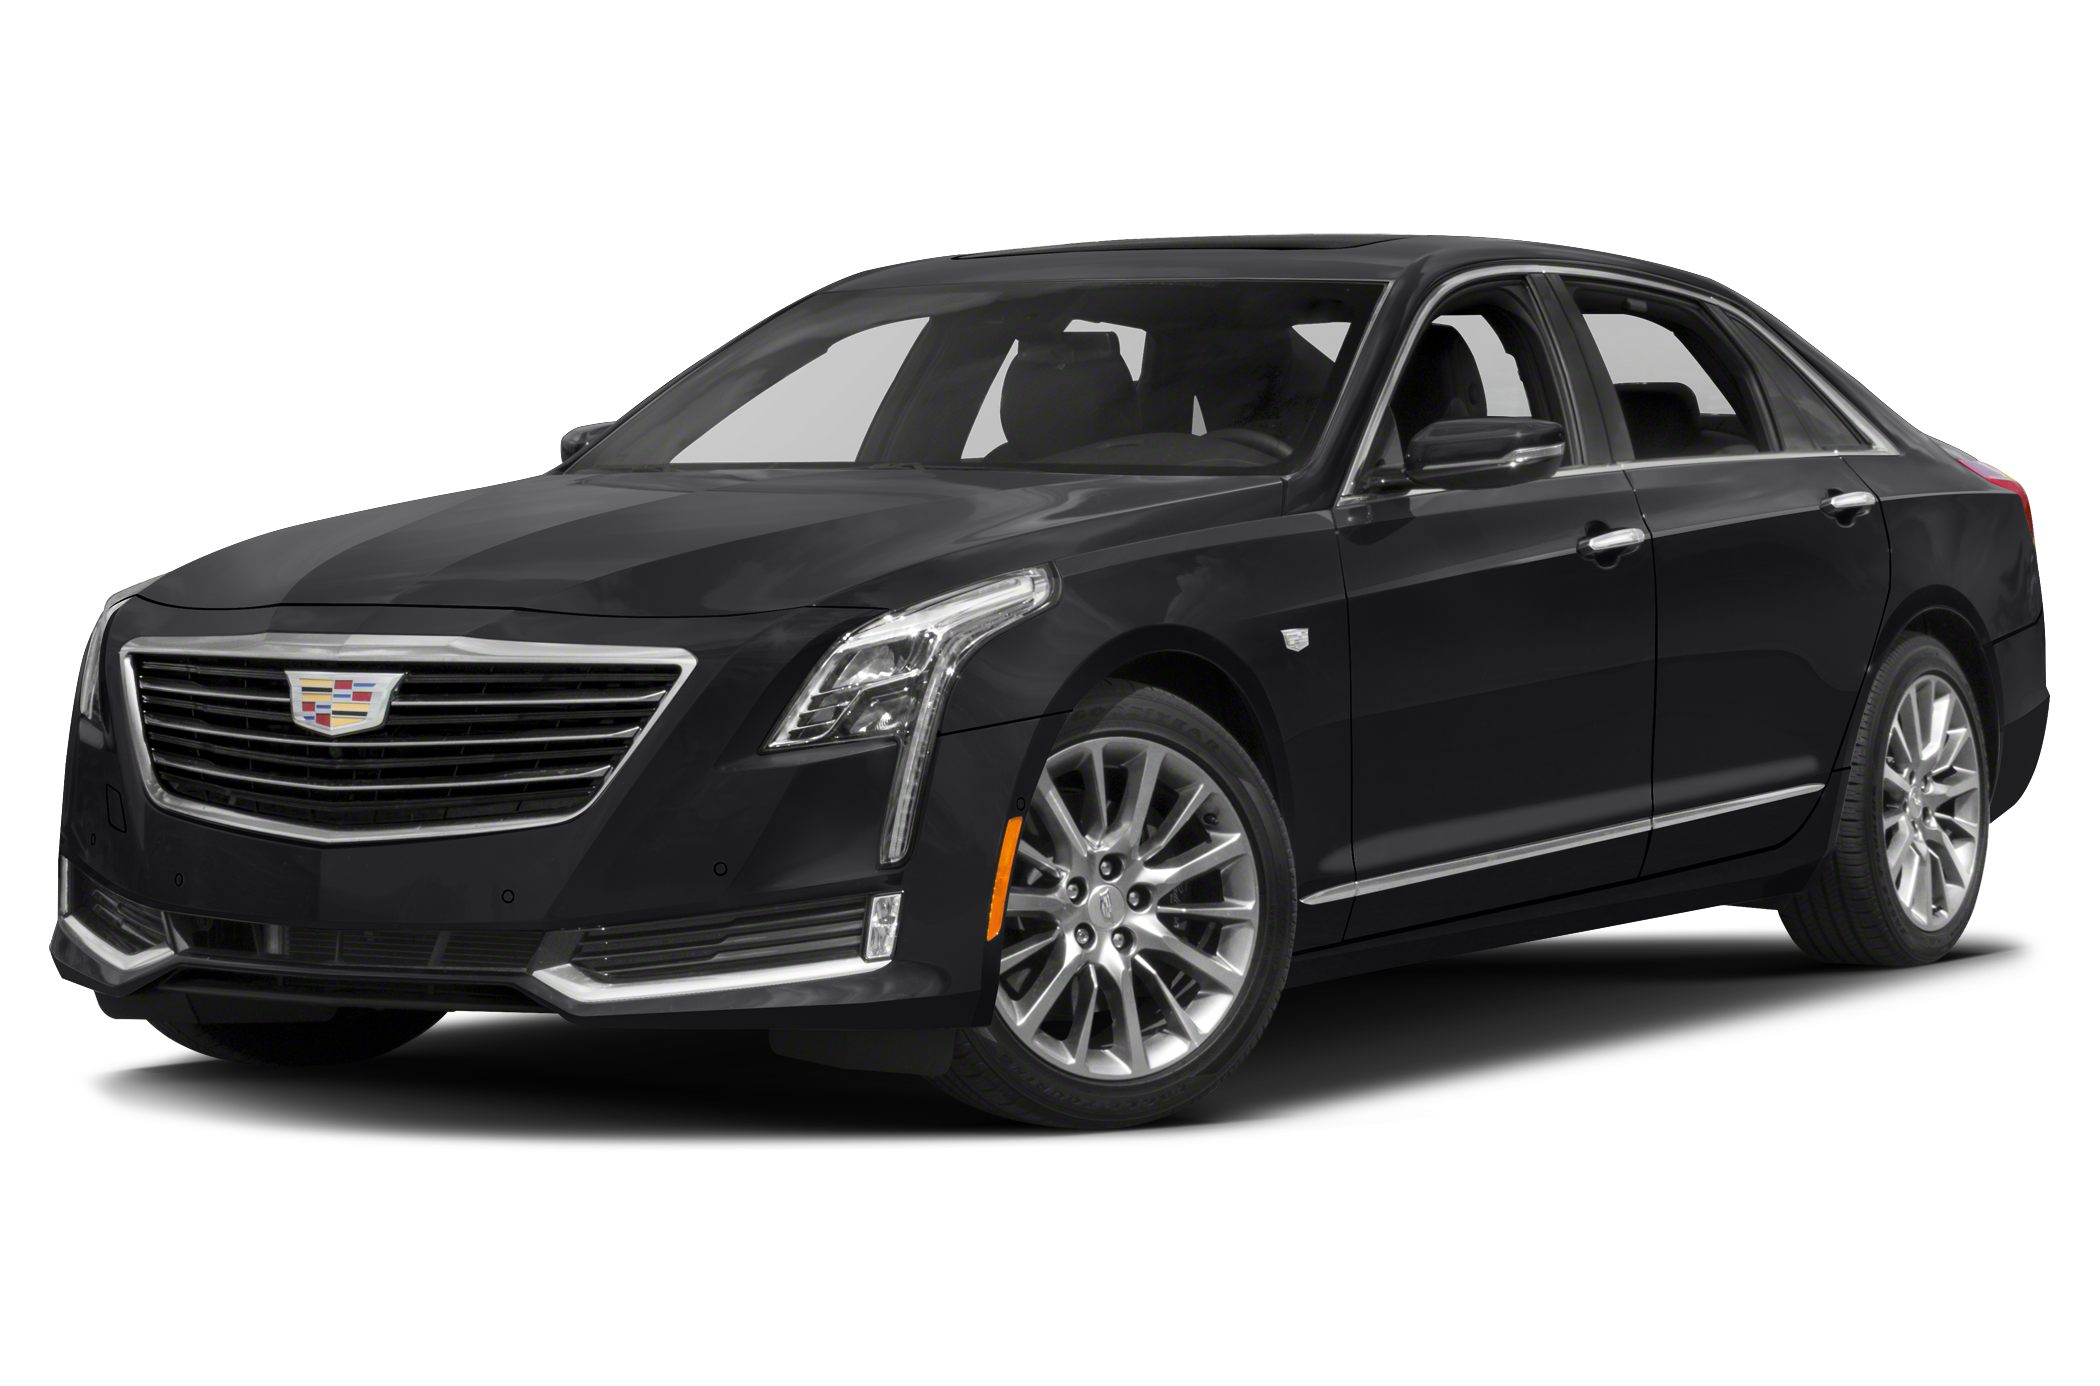 2016 Cadillac CT6: First Drive Photo Gallery - Autoblog